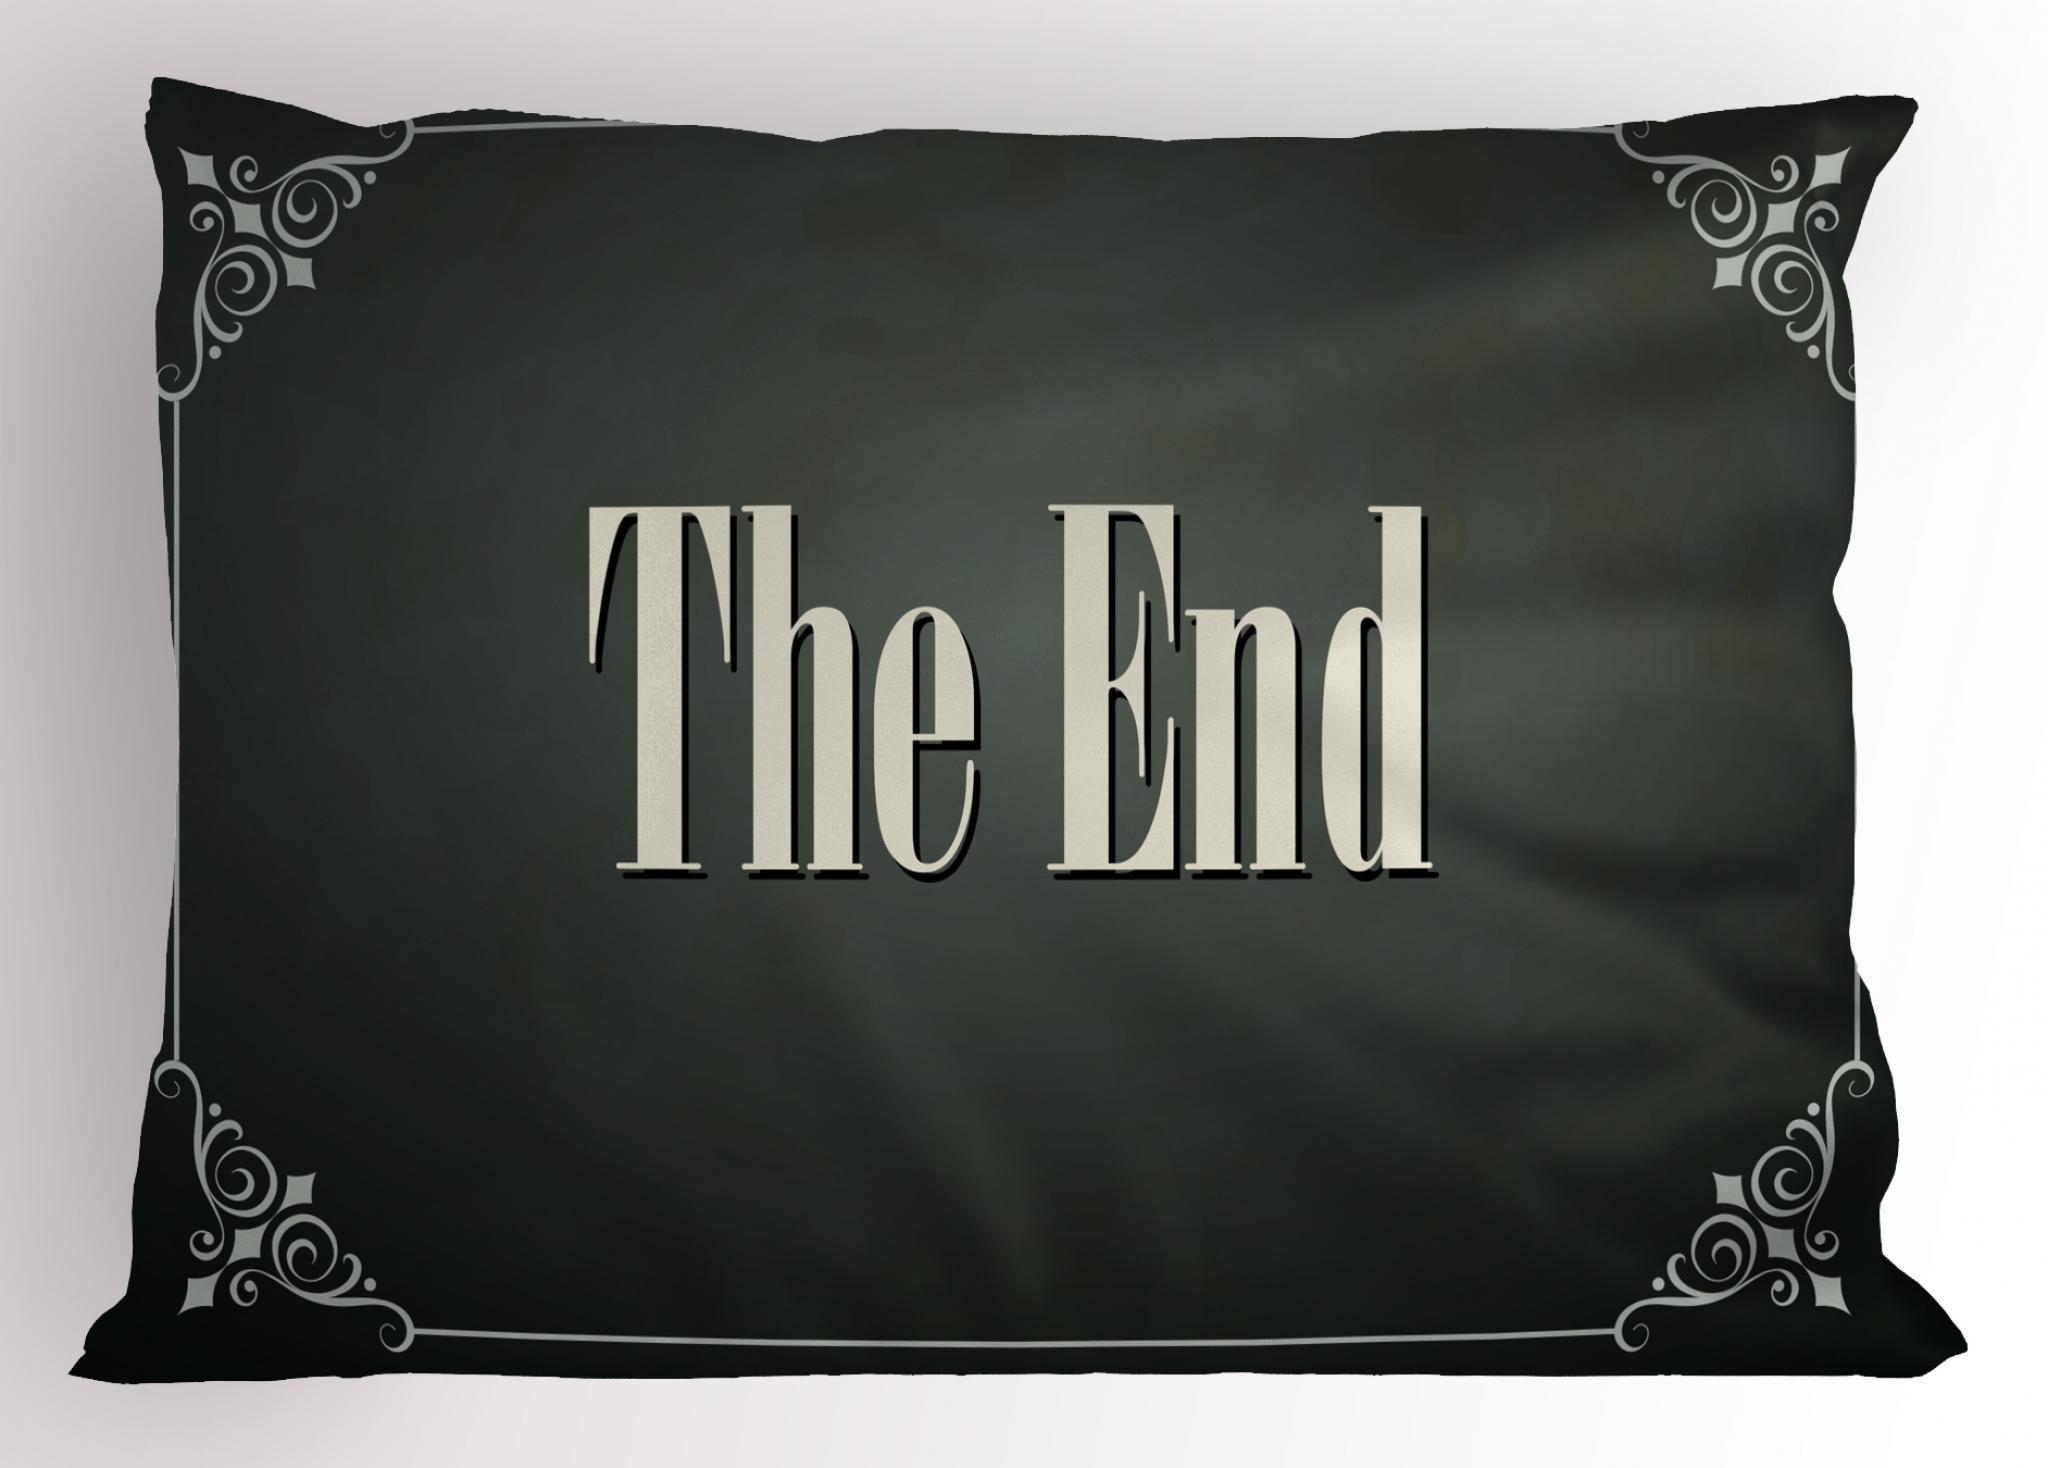 Ambesonne Movie Theater Pillow Sham, The End Quote with Swirled Frame on an Abstract Ombre Background, Decorative Standard Queen Size Printed Pillowcase, 30 X 20 inches, Charcoal Grey Cream